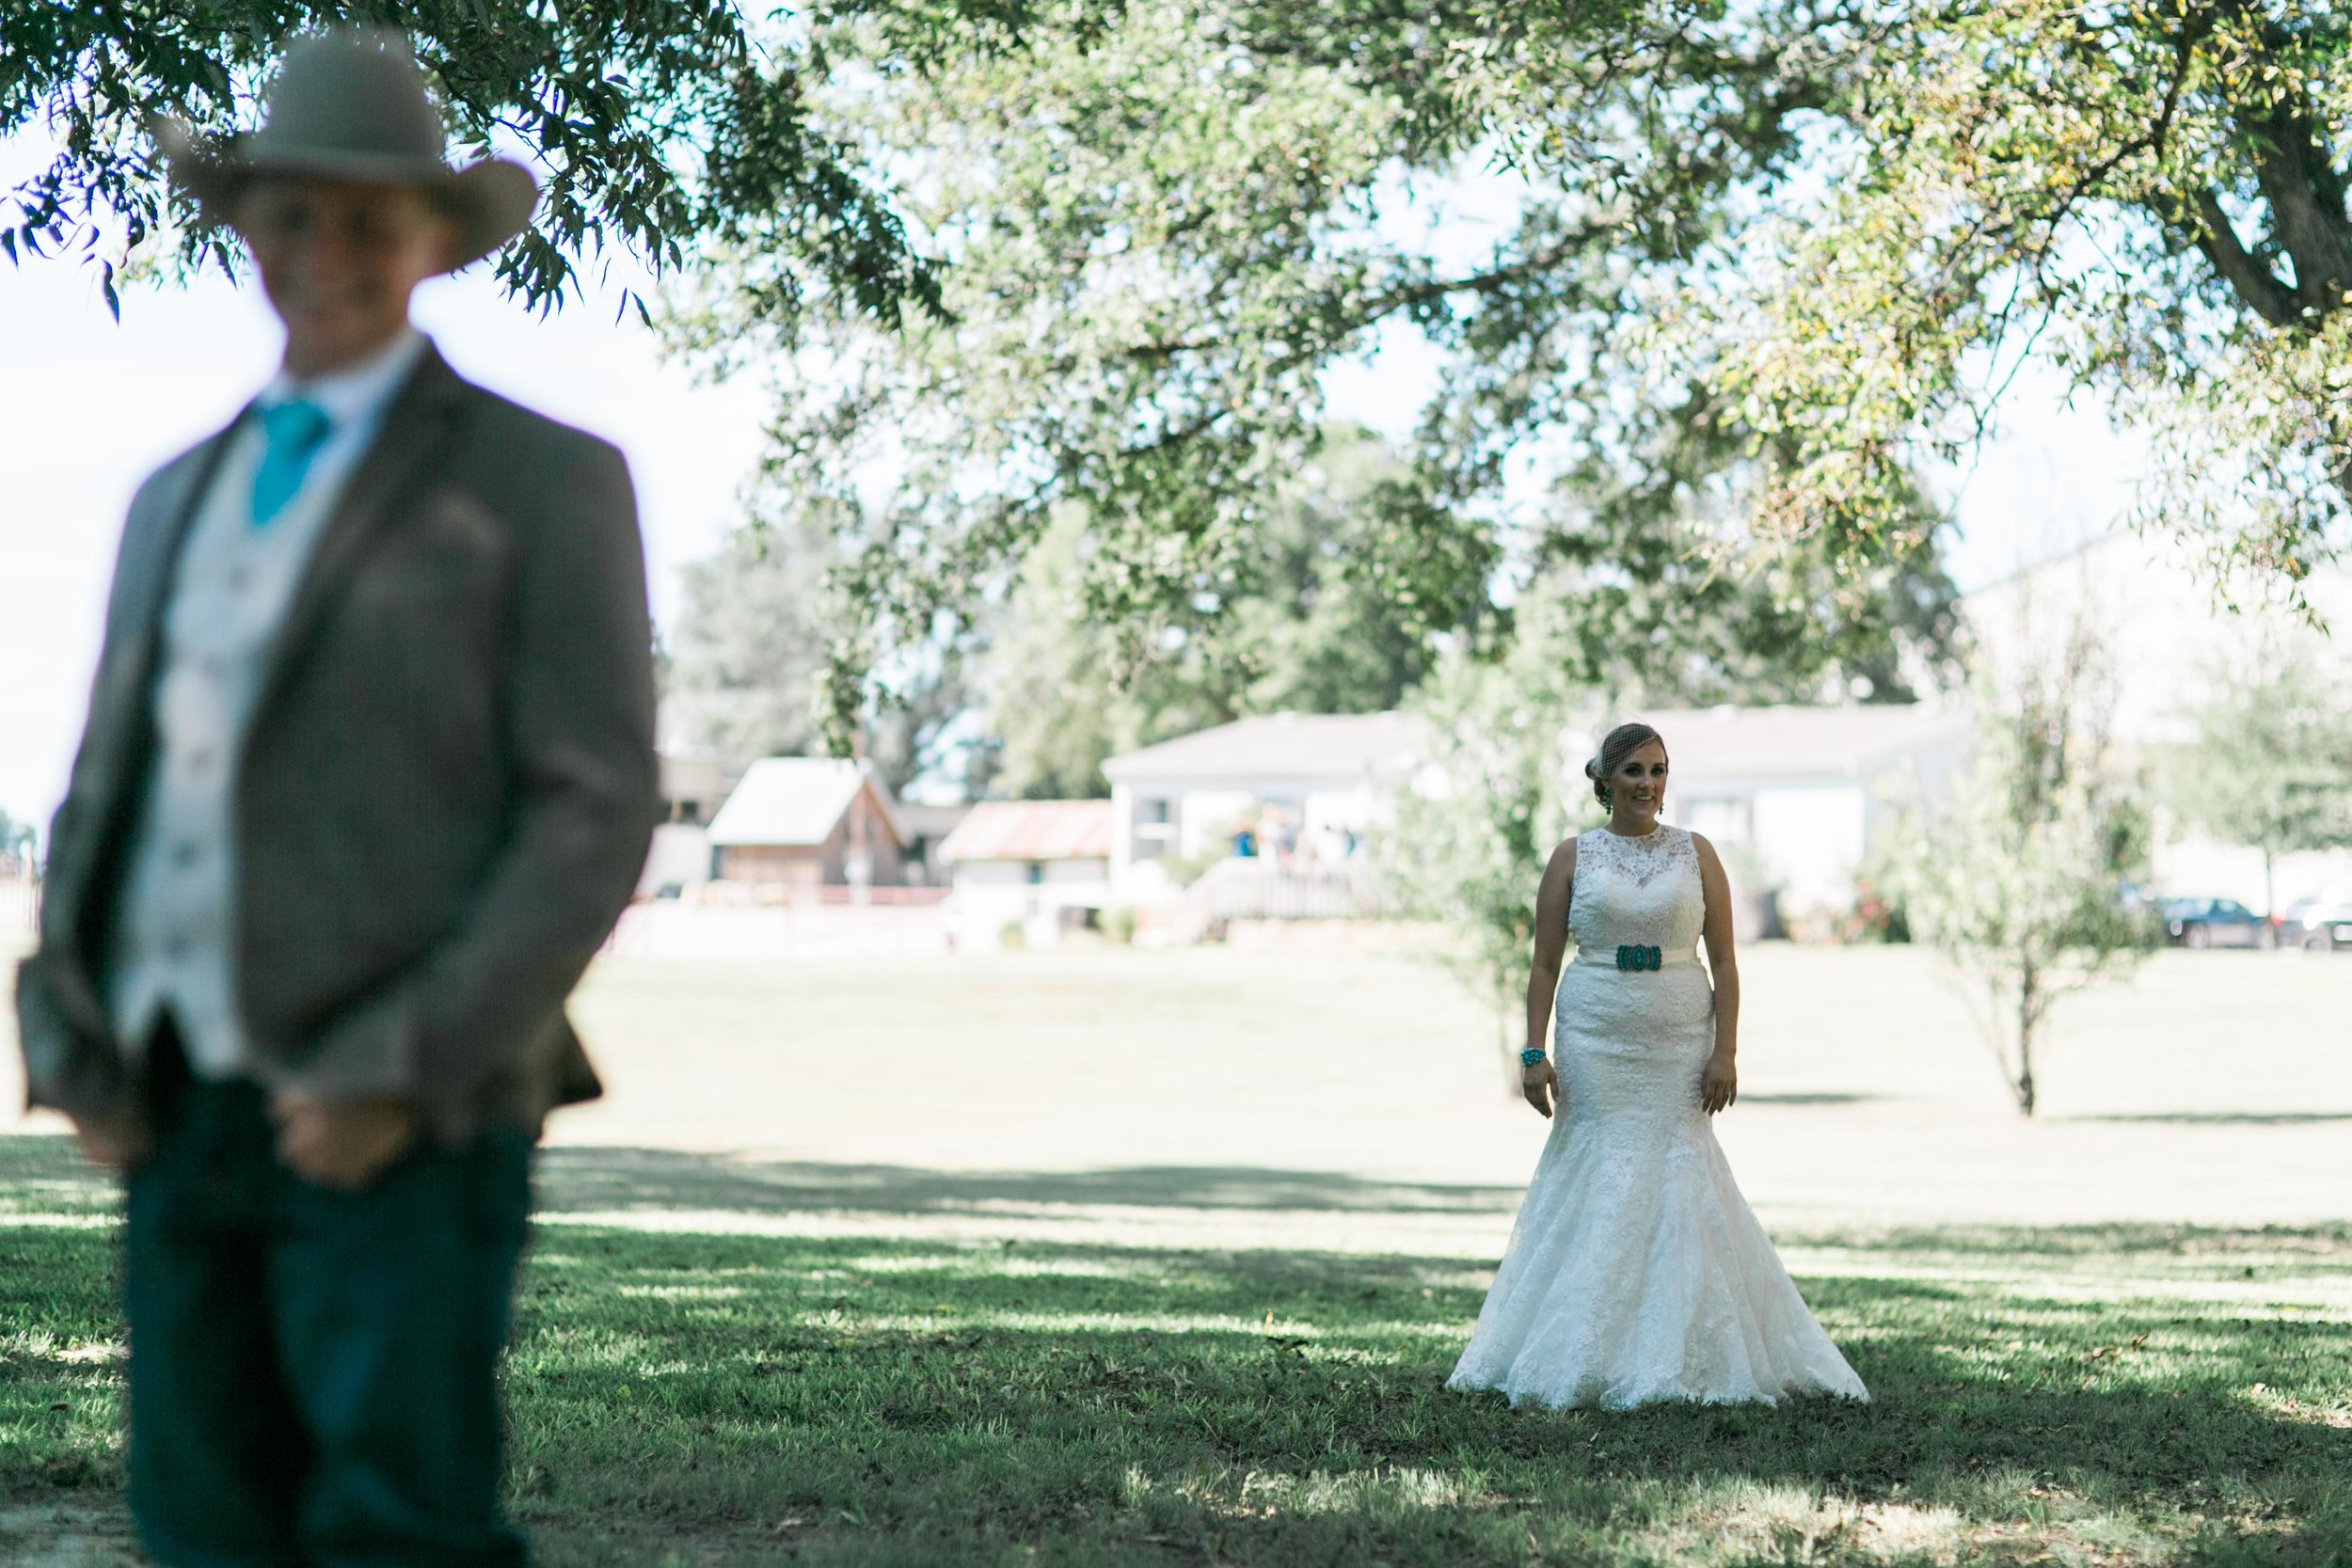 The excitement is high from these two people seeing the first time on the wedding day.